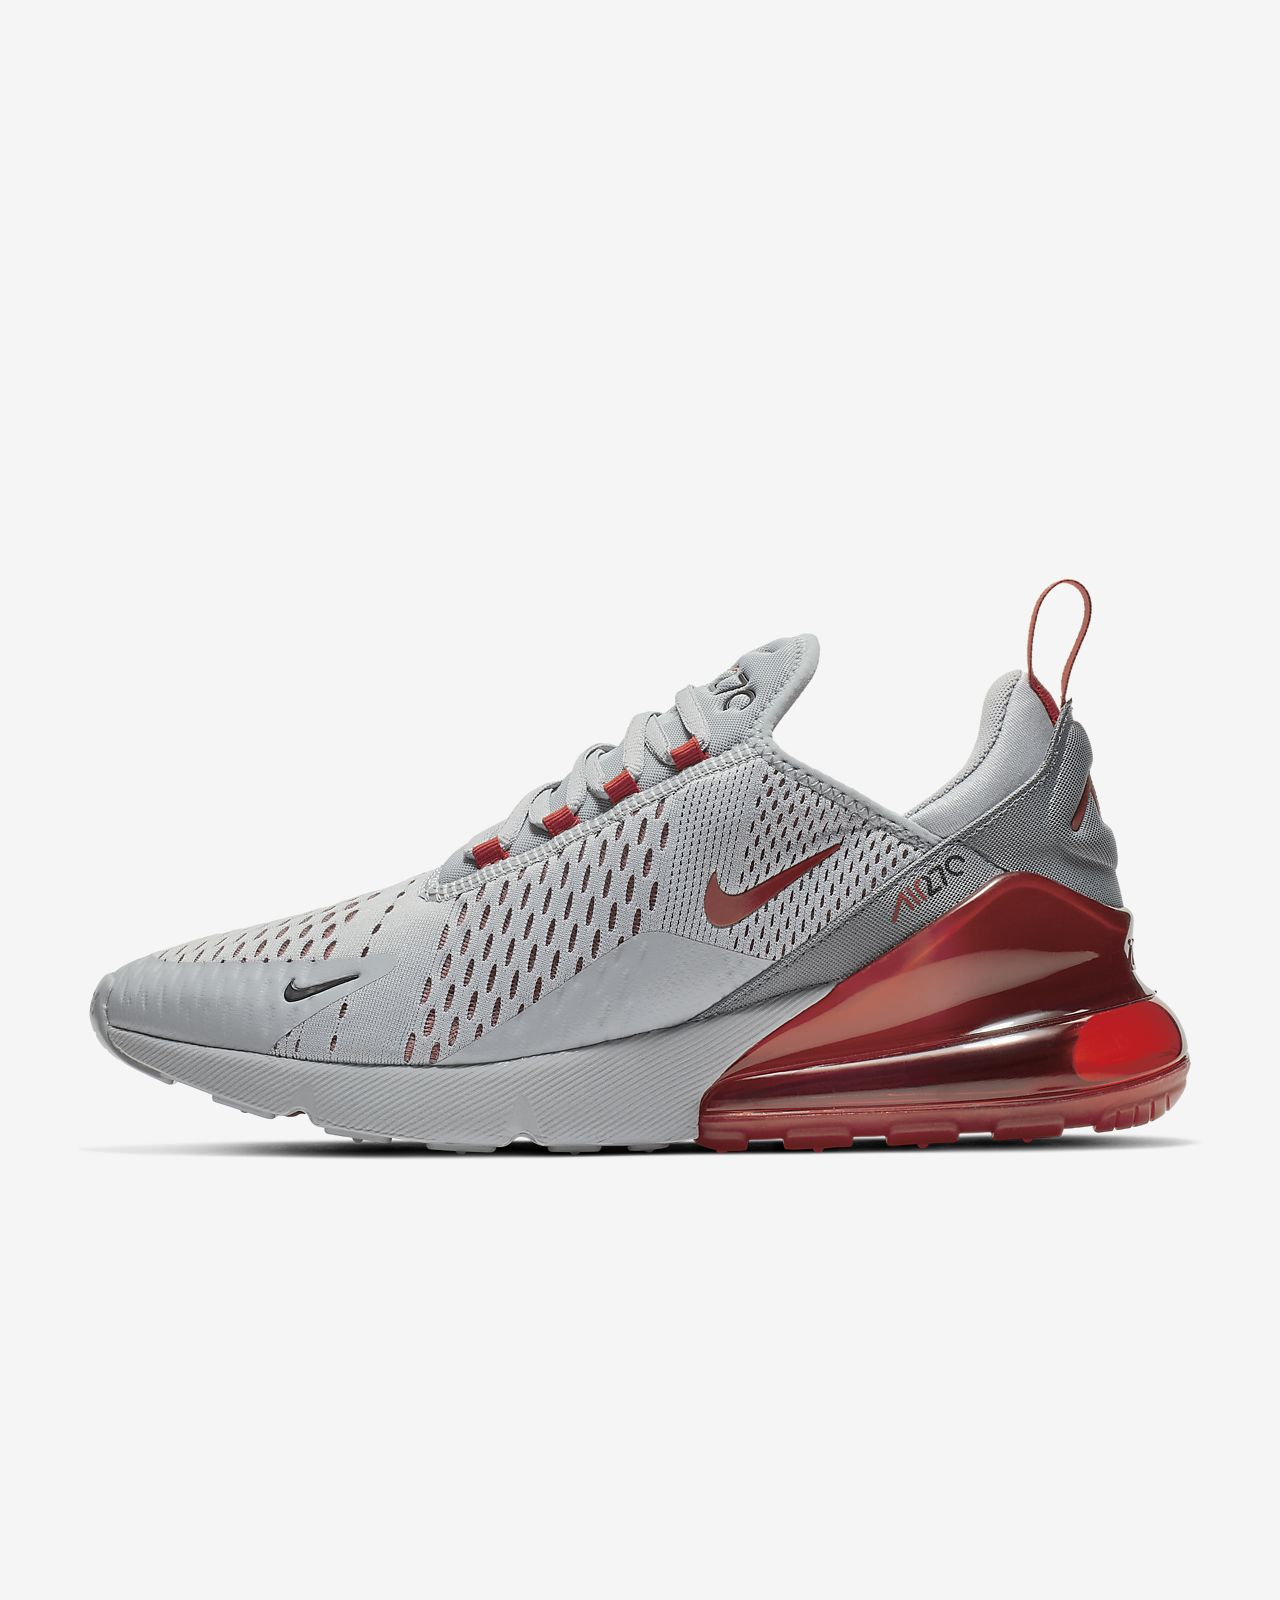 8063d7fccf8 Nike Air Max 270 Men s Shoe. Nike.com IN